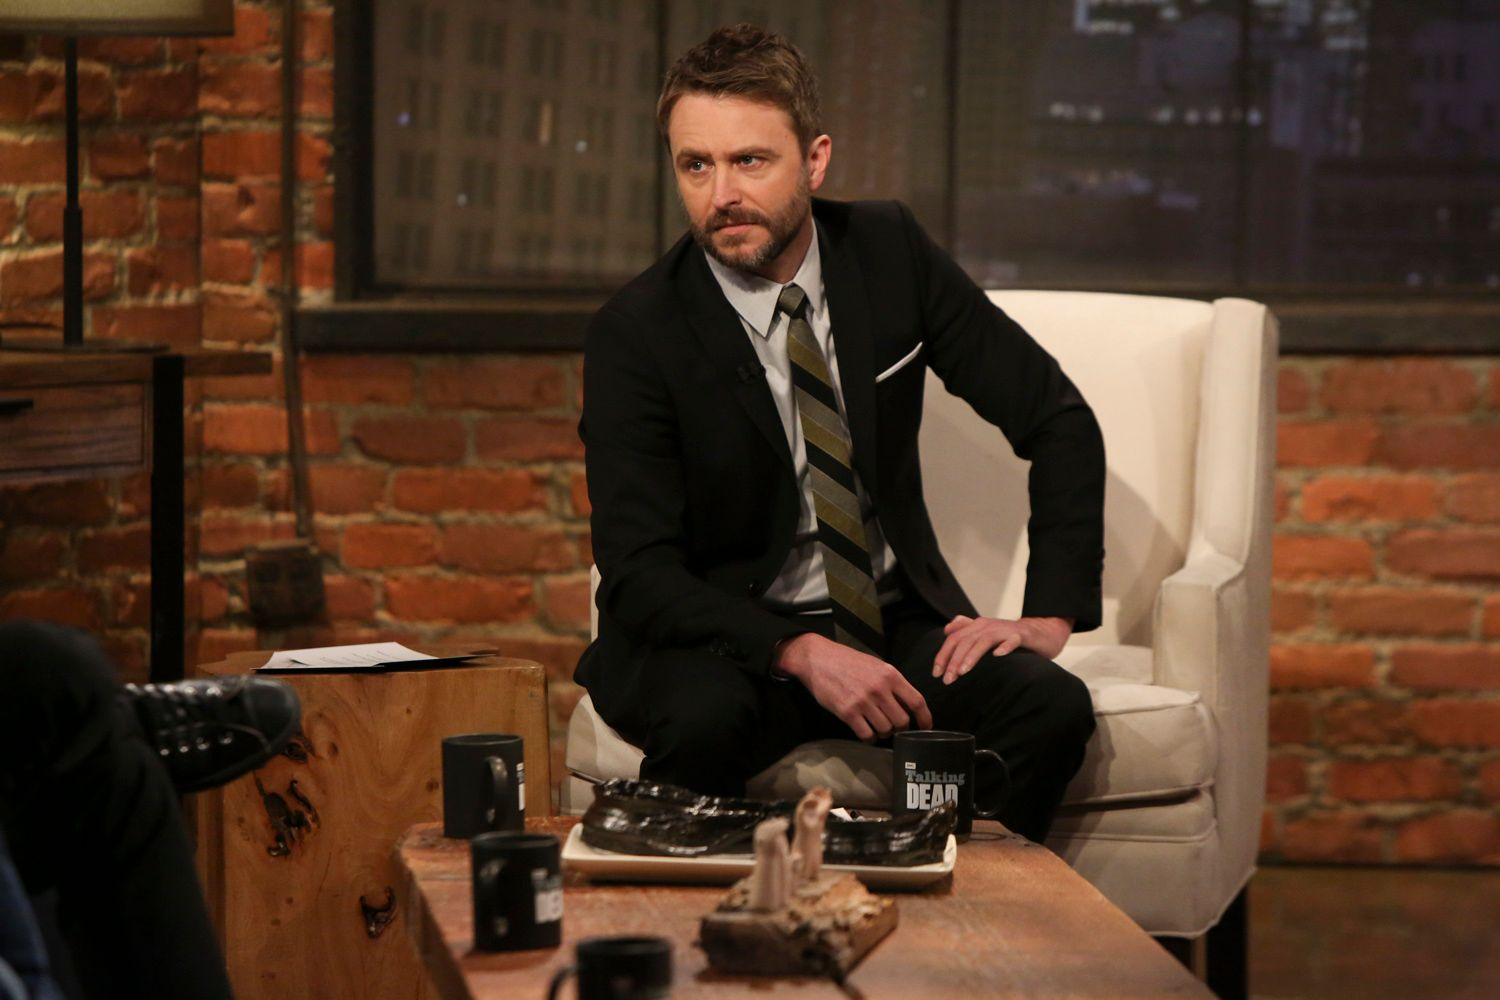 NBC to 'Assess' Chris Hardwick's Role as The Wall Host Amid Allegations